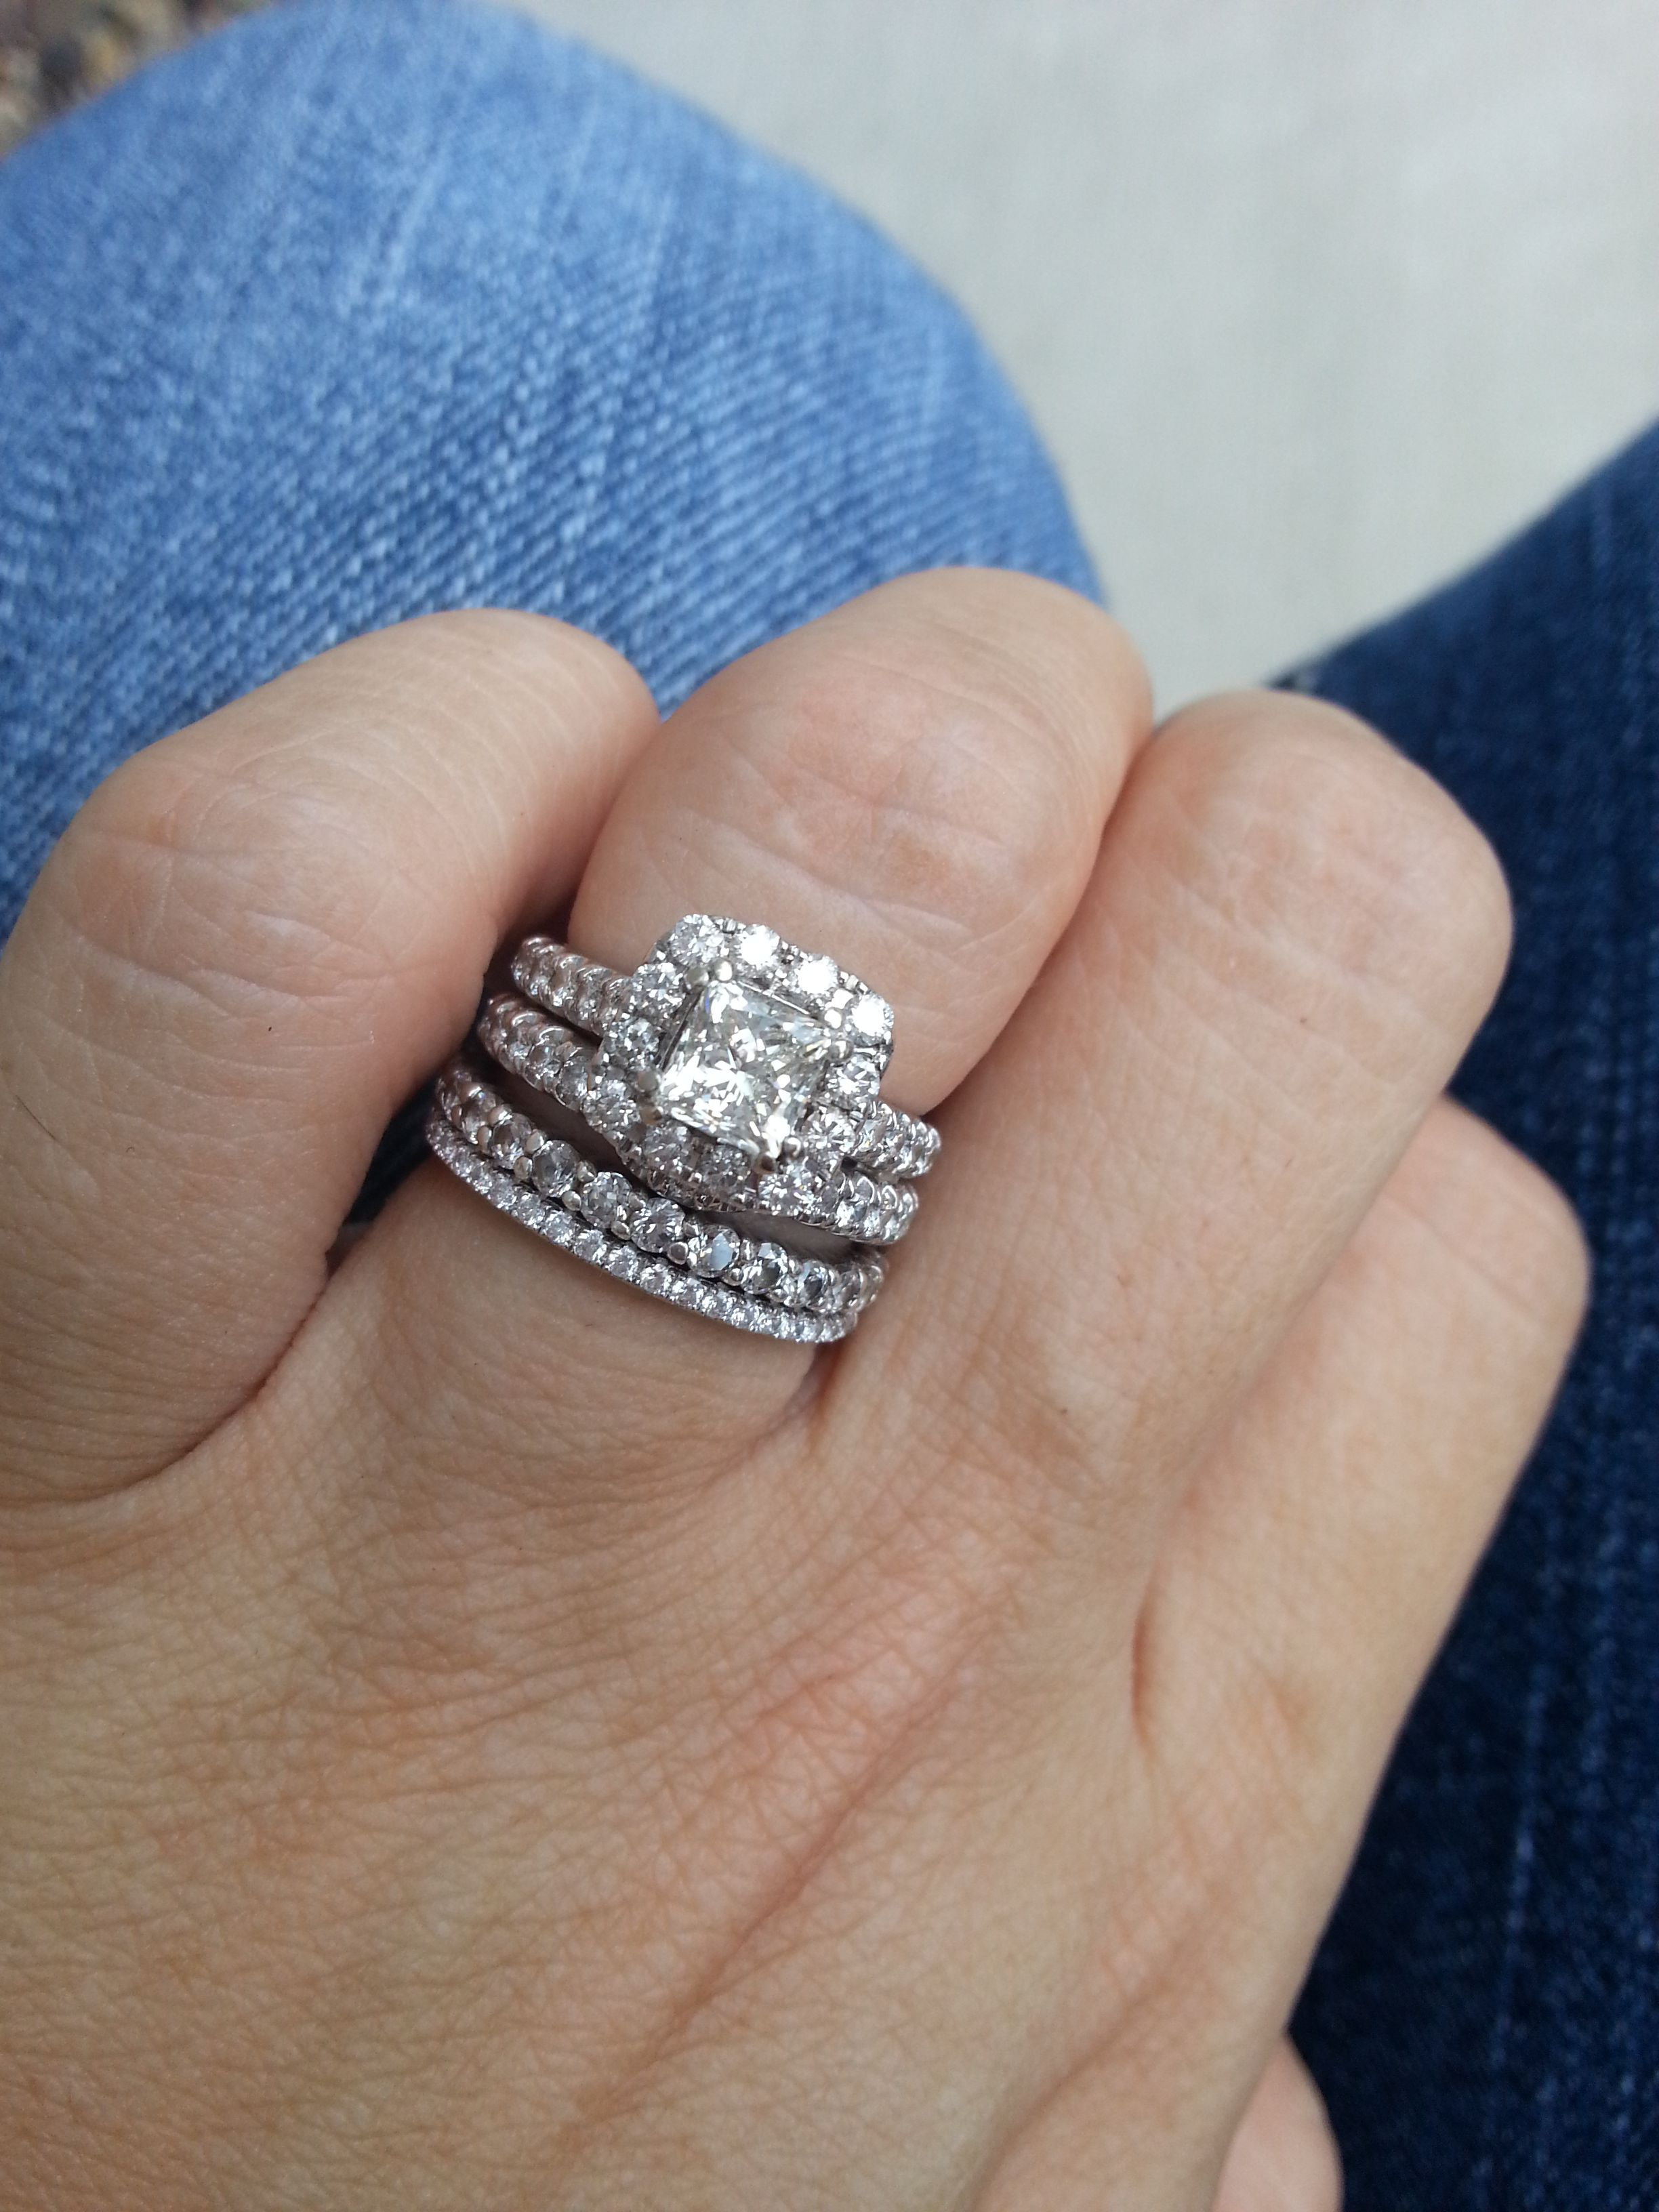 4a1affe2fc11 Pics of Neil Lane 1.5 ct Halo Engagement Ring on 4.5 size Finger! -  Weddingbee